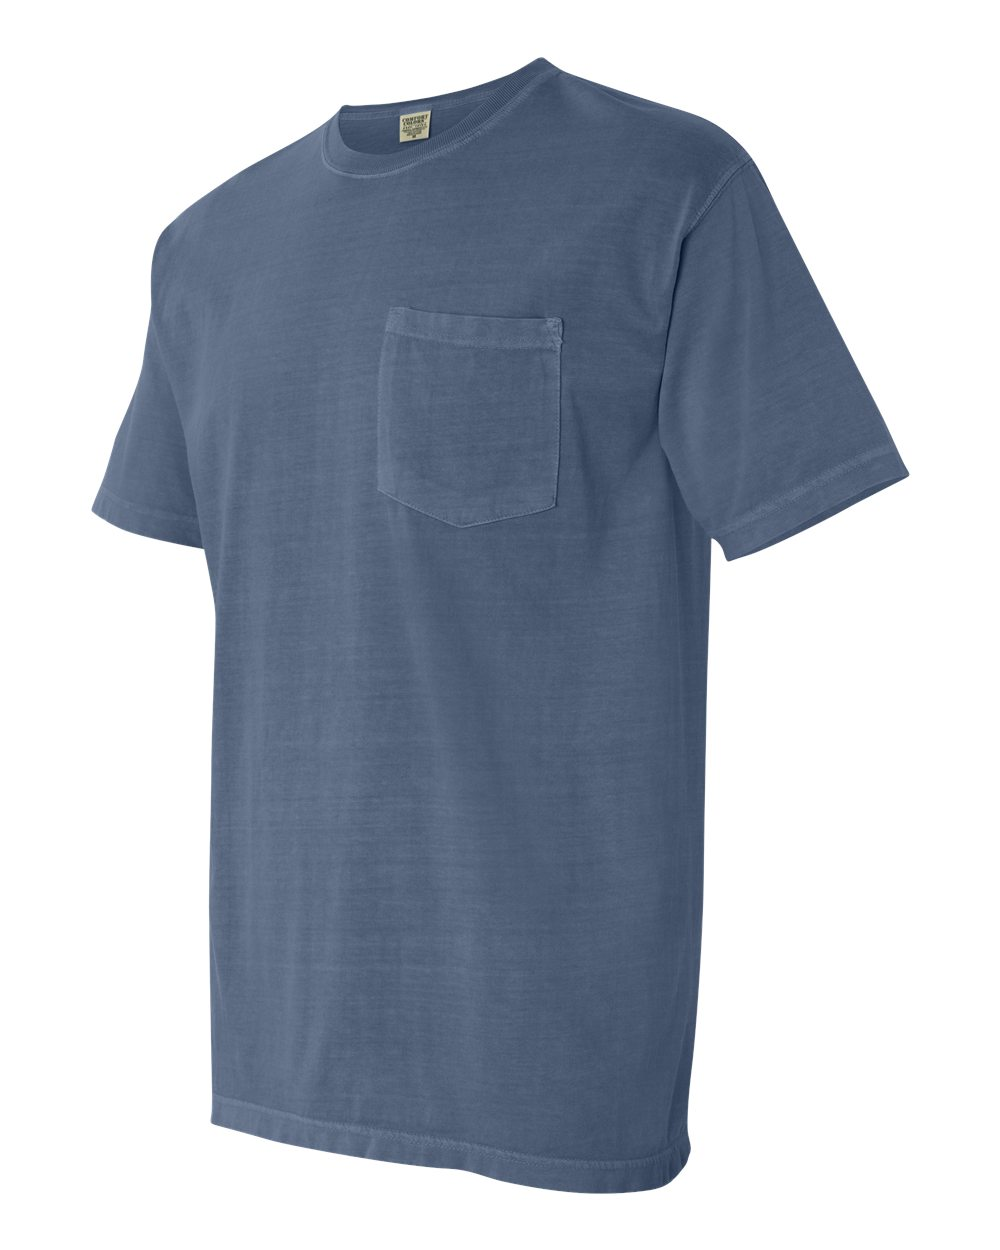 Comfort-Colors-Men-039-s-6-1-oz-Garment-Dyed-Pocket-T-Shirt-6030CC-S-3XL thumbnail 9